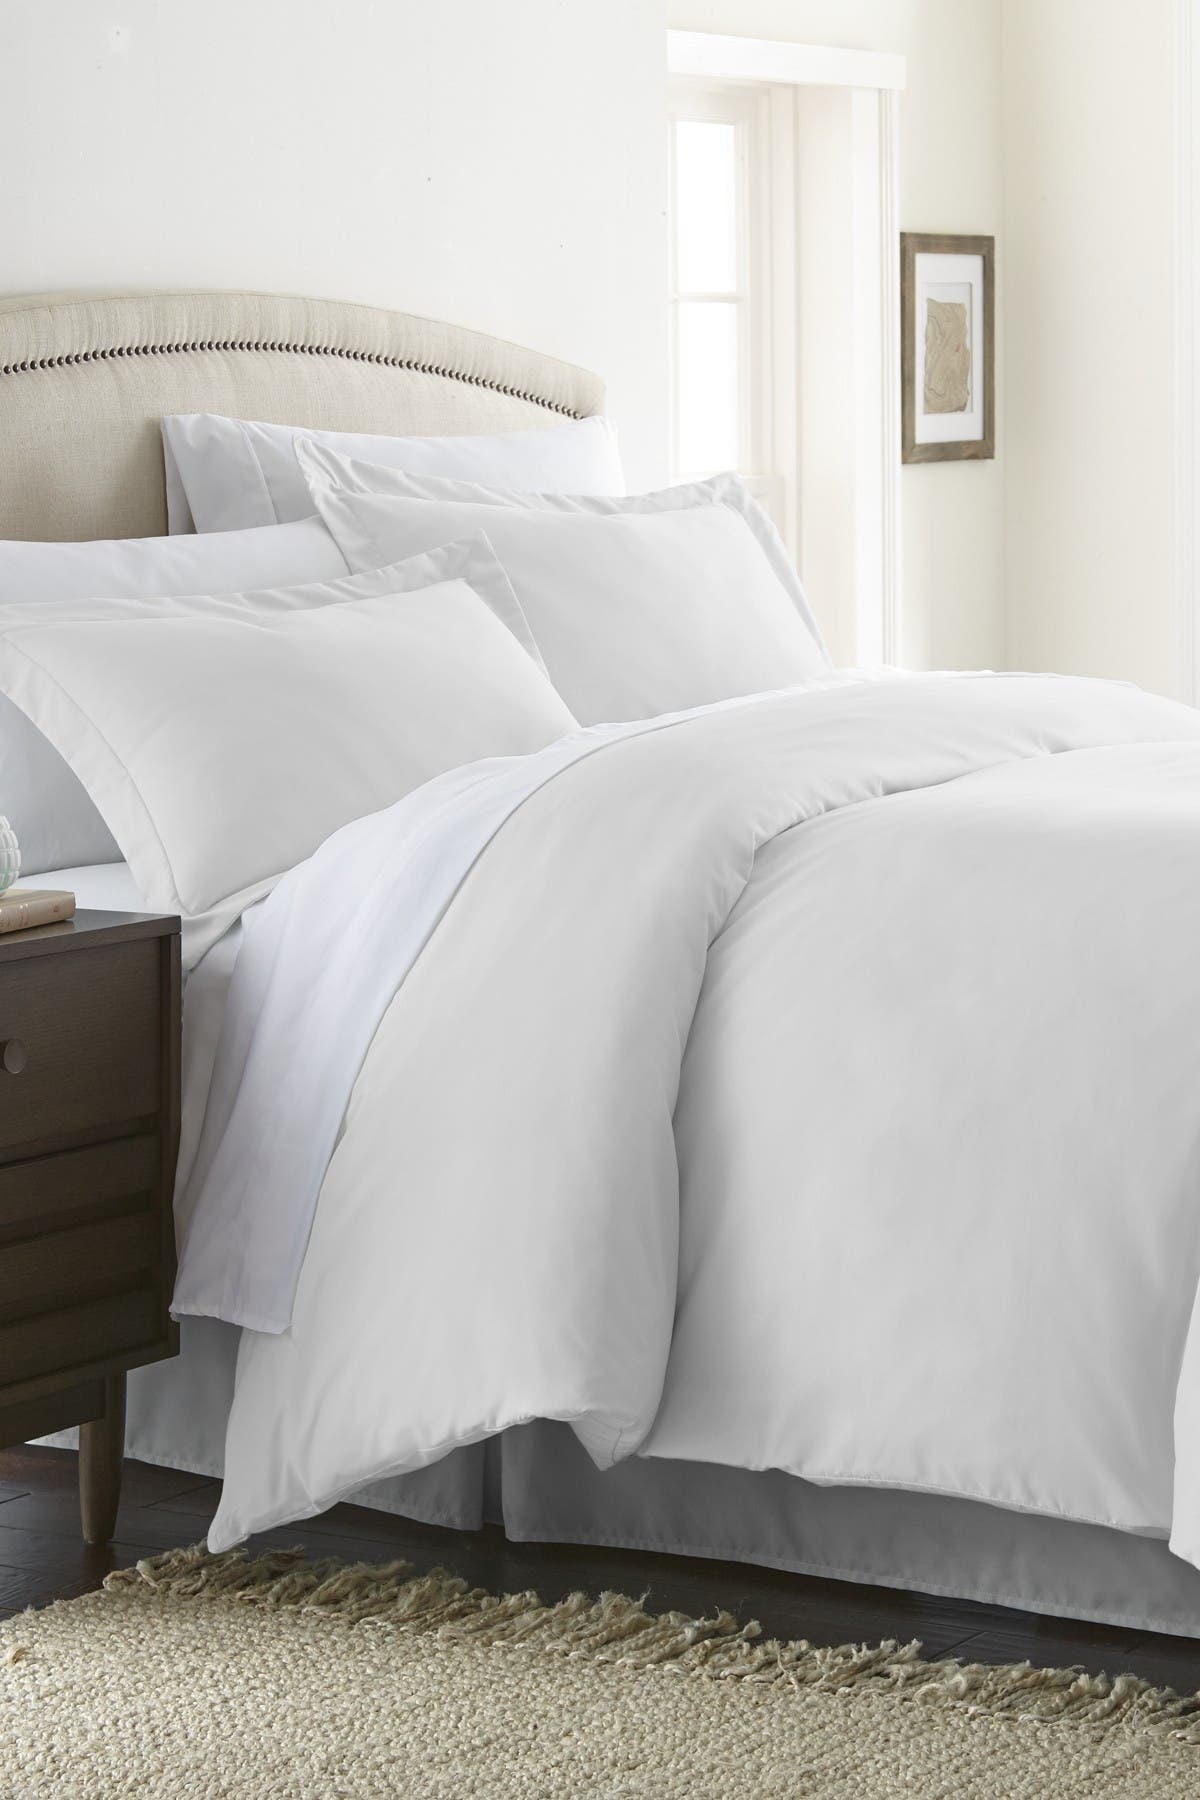 Image of IENJOY HOME Home Collection Premium Ultra Soft 3-Piece King/Cal King Duvet Cover Set - White